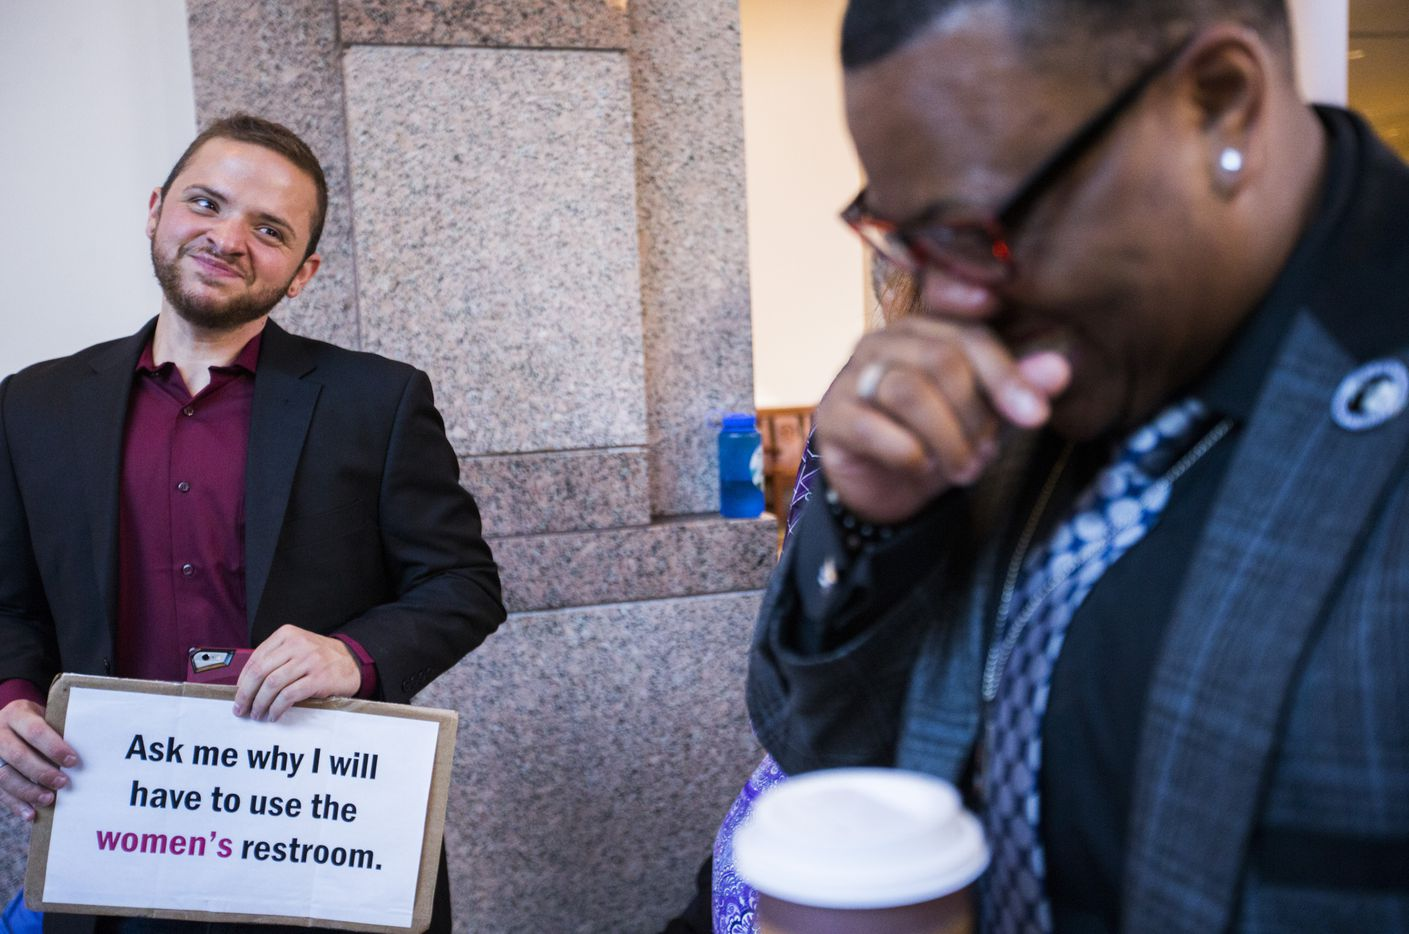 Trenton Johnson, right, jokes with Ethan Avanzino, left,  just after 7 a.m. as they stand in line to voice their opposition to the bathroom bill at a Senate State Affairs Committee public hearing on the fourth day of a special legislative session on Friday, July 21, 2017 at the Texas state capitol in Austin, Texas.